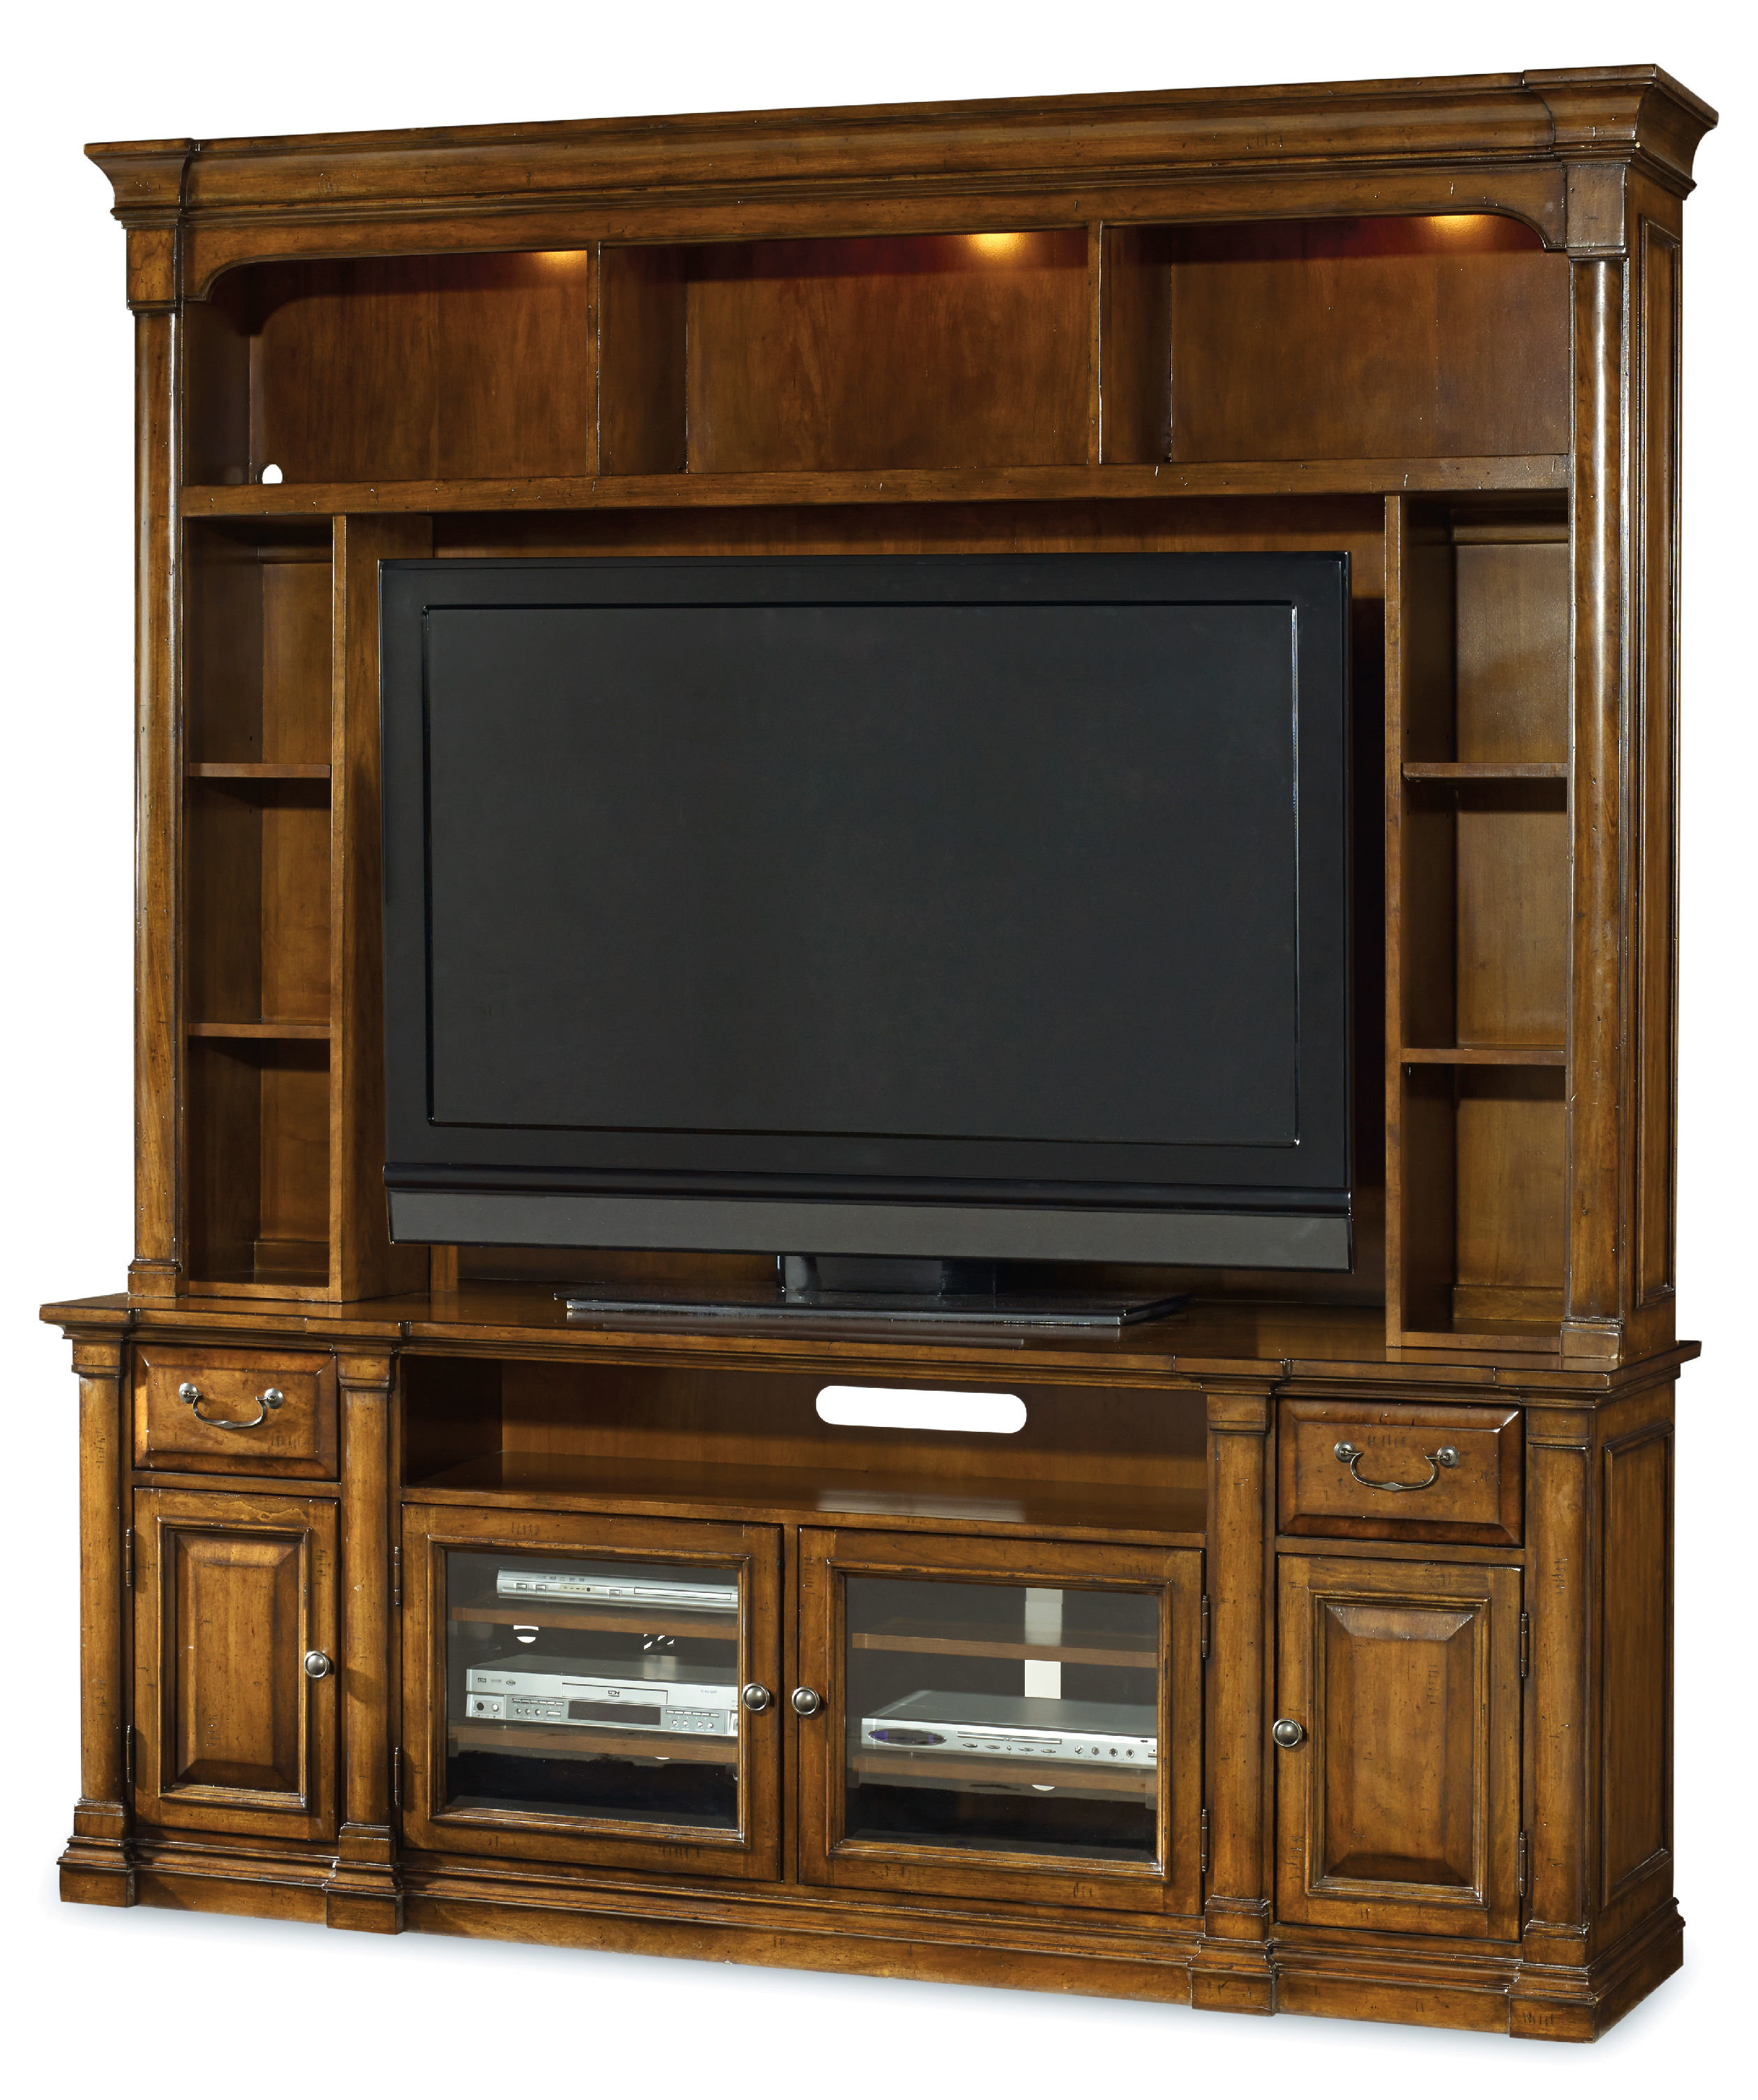 70 Inch Tv Stands | Joss & Main With Regard To Bale Rustic Grey 82 Inch Tv Stands (View 12 of 20)